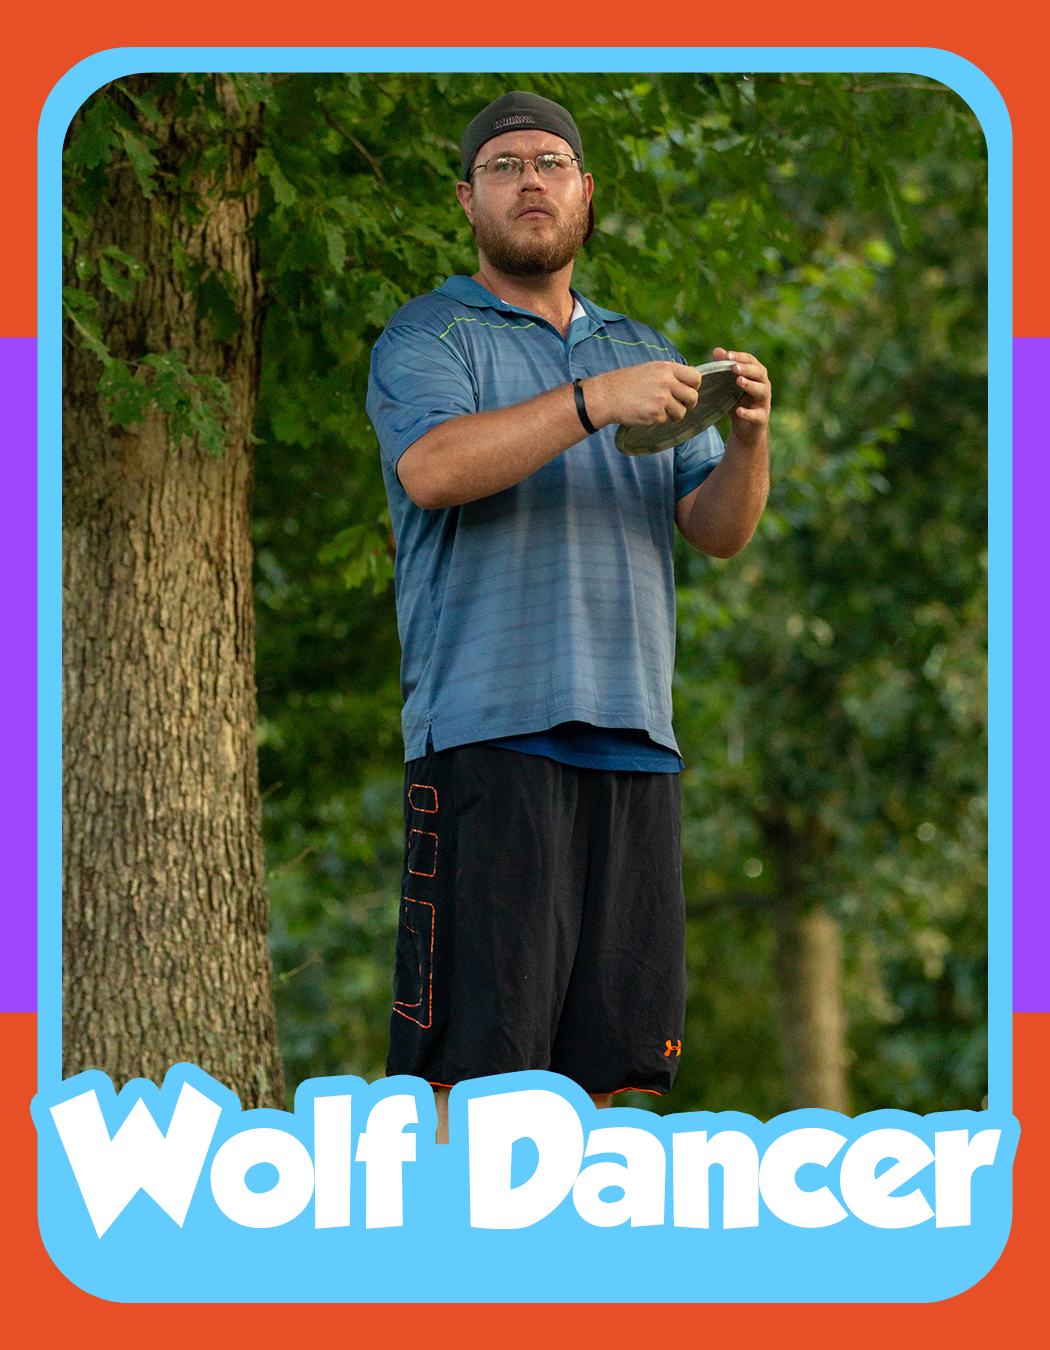 Adam Kuznarsky - Not many people know the legend of the Wolf Dancer. With his tornado-like throwing motion and the way he displays himself during his split putts, there's no hiding the ferocious ballet he displays every tournament. This wolf doesn't require a pack, he's more than able to take 1st place on his own.